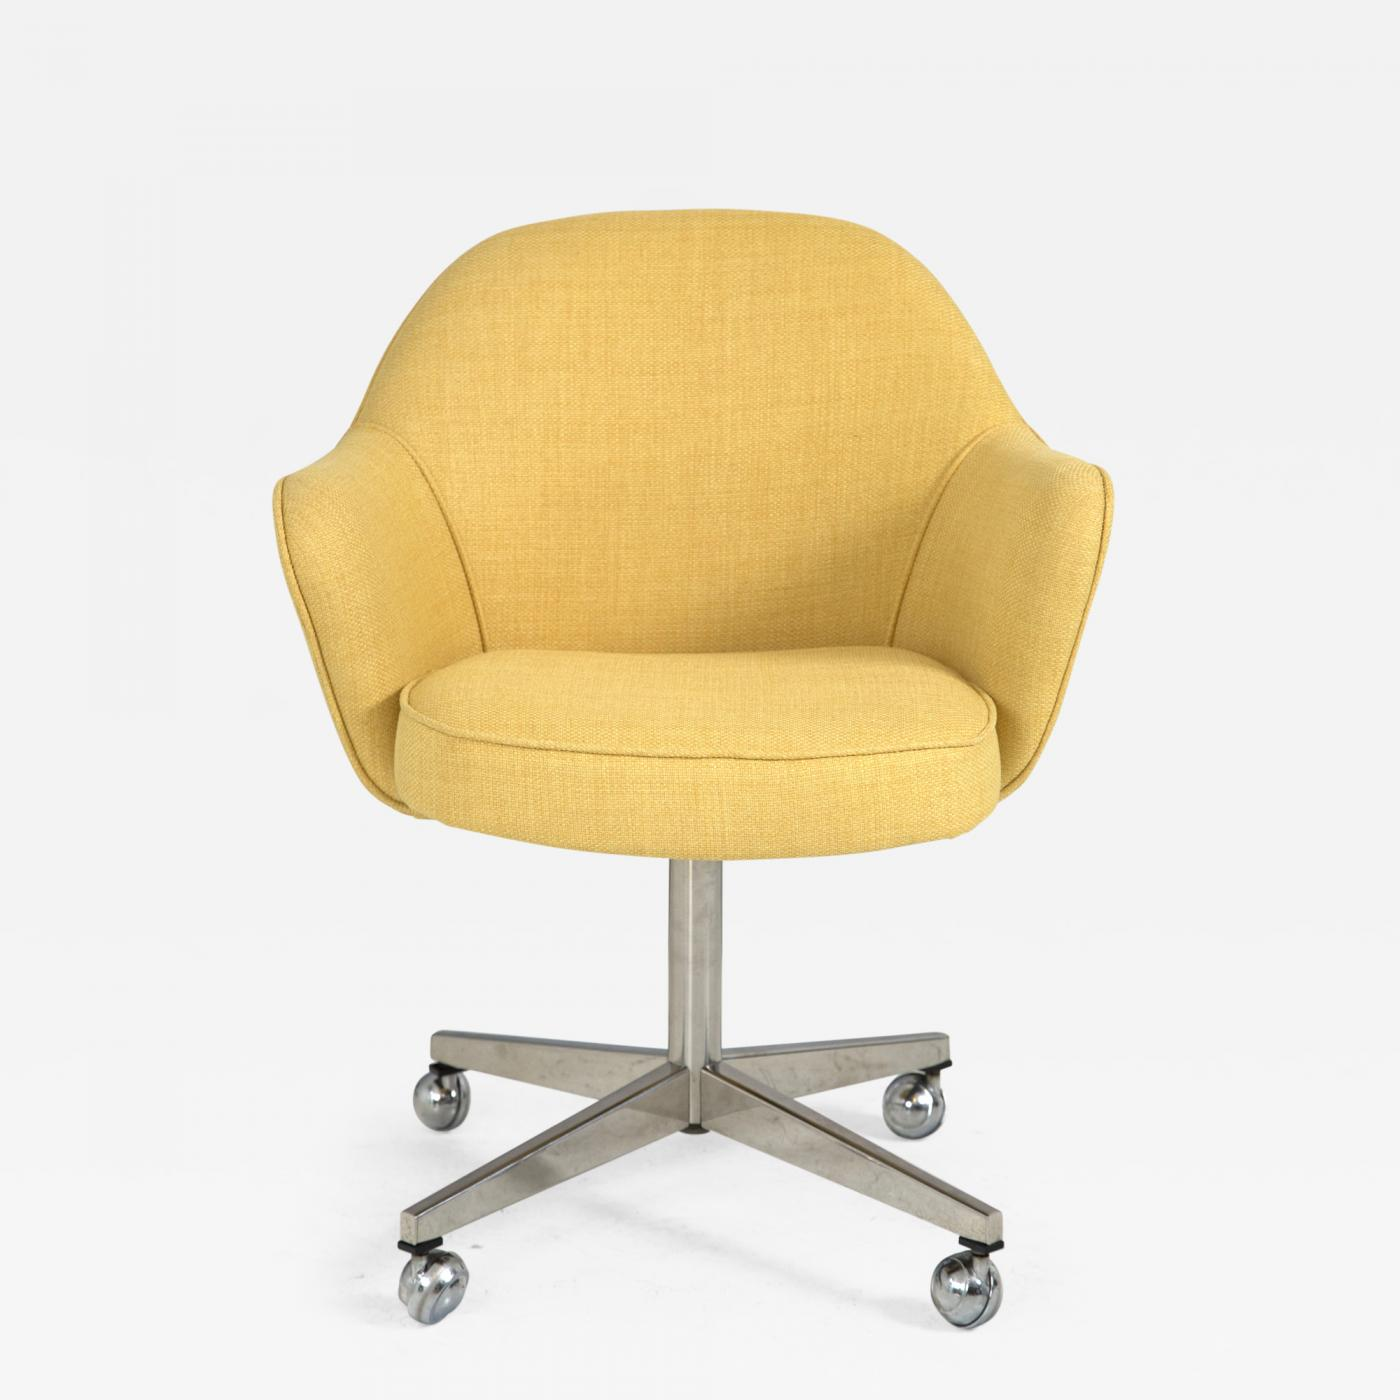 microfiber office chair low back chairs for concerts knoll desk in yellow